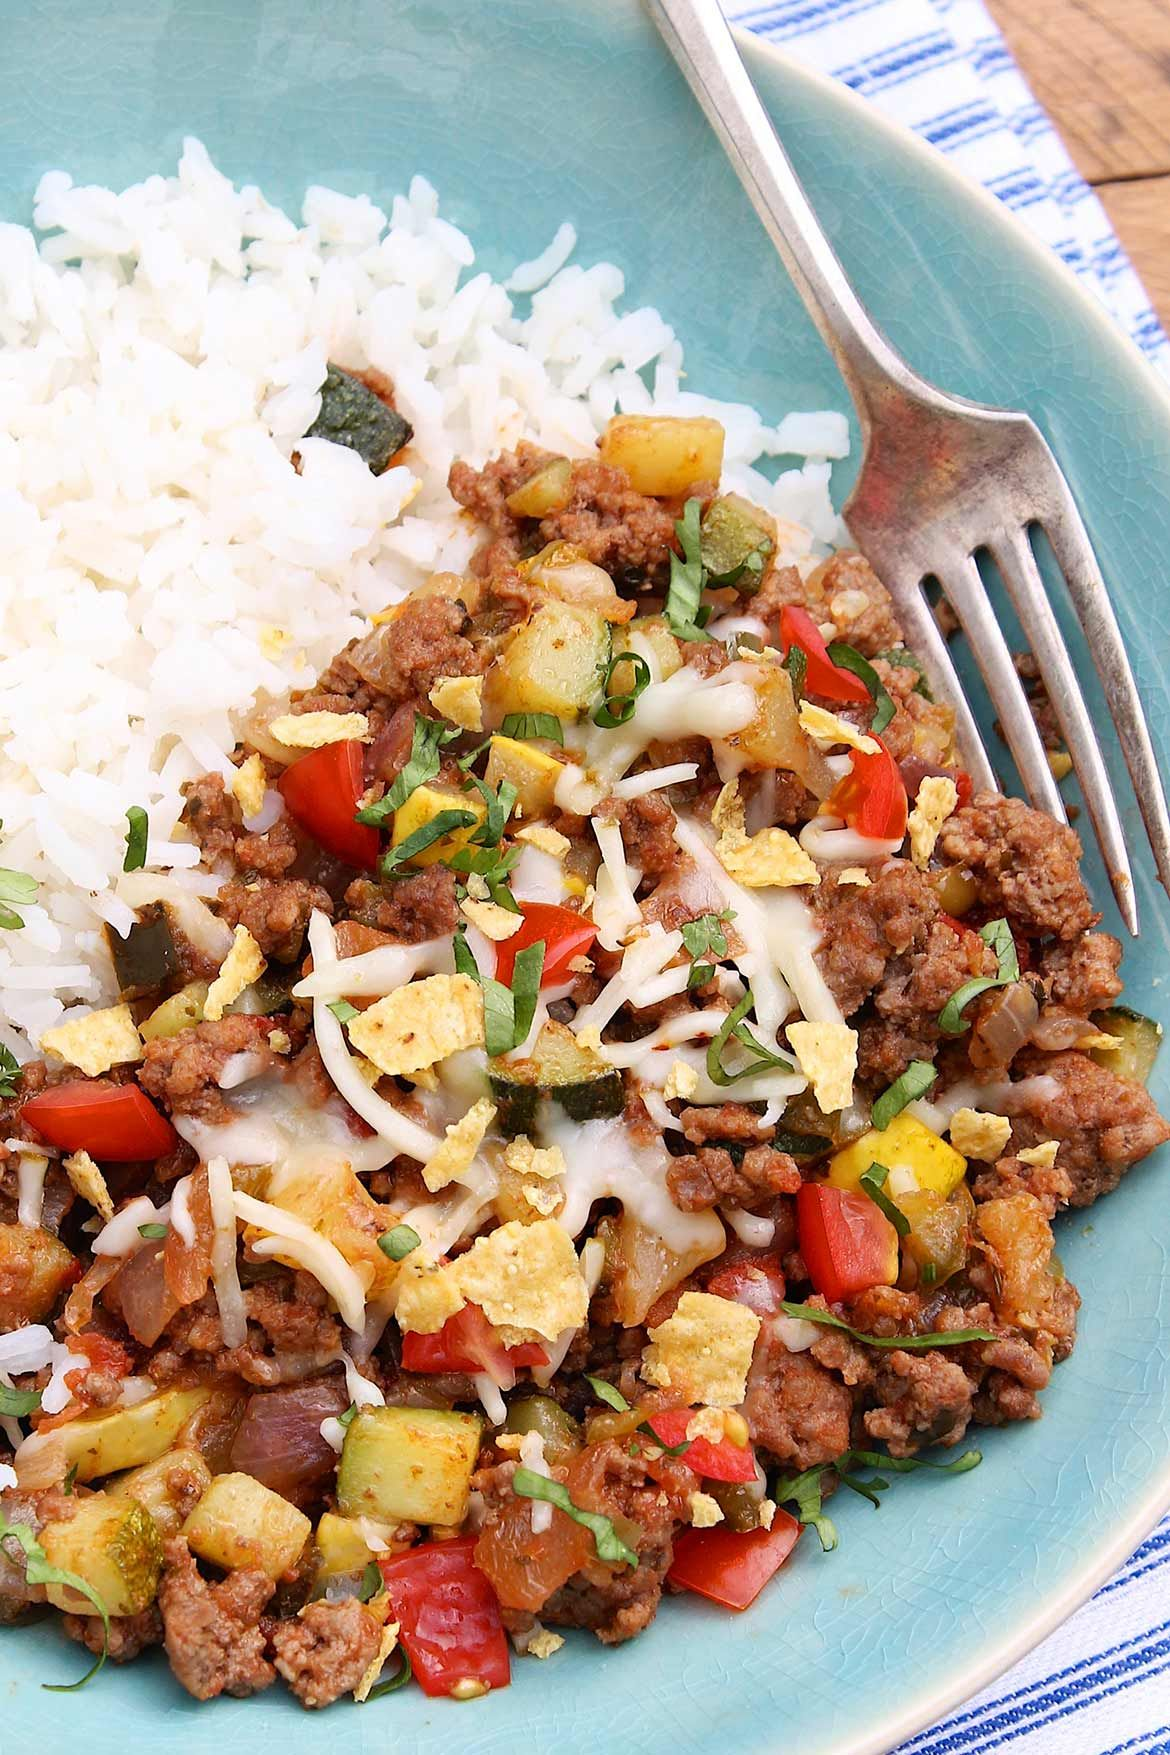 Easy Zucchini Ground Beef Dinner The Fountain Avenue Kitchen Dinner With Ground Beef Beef Dinner Healthy Ground Beef